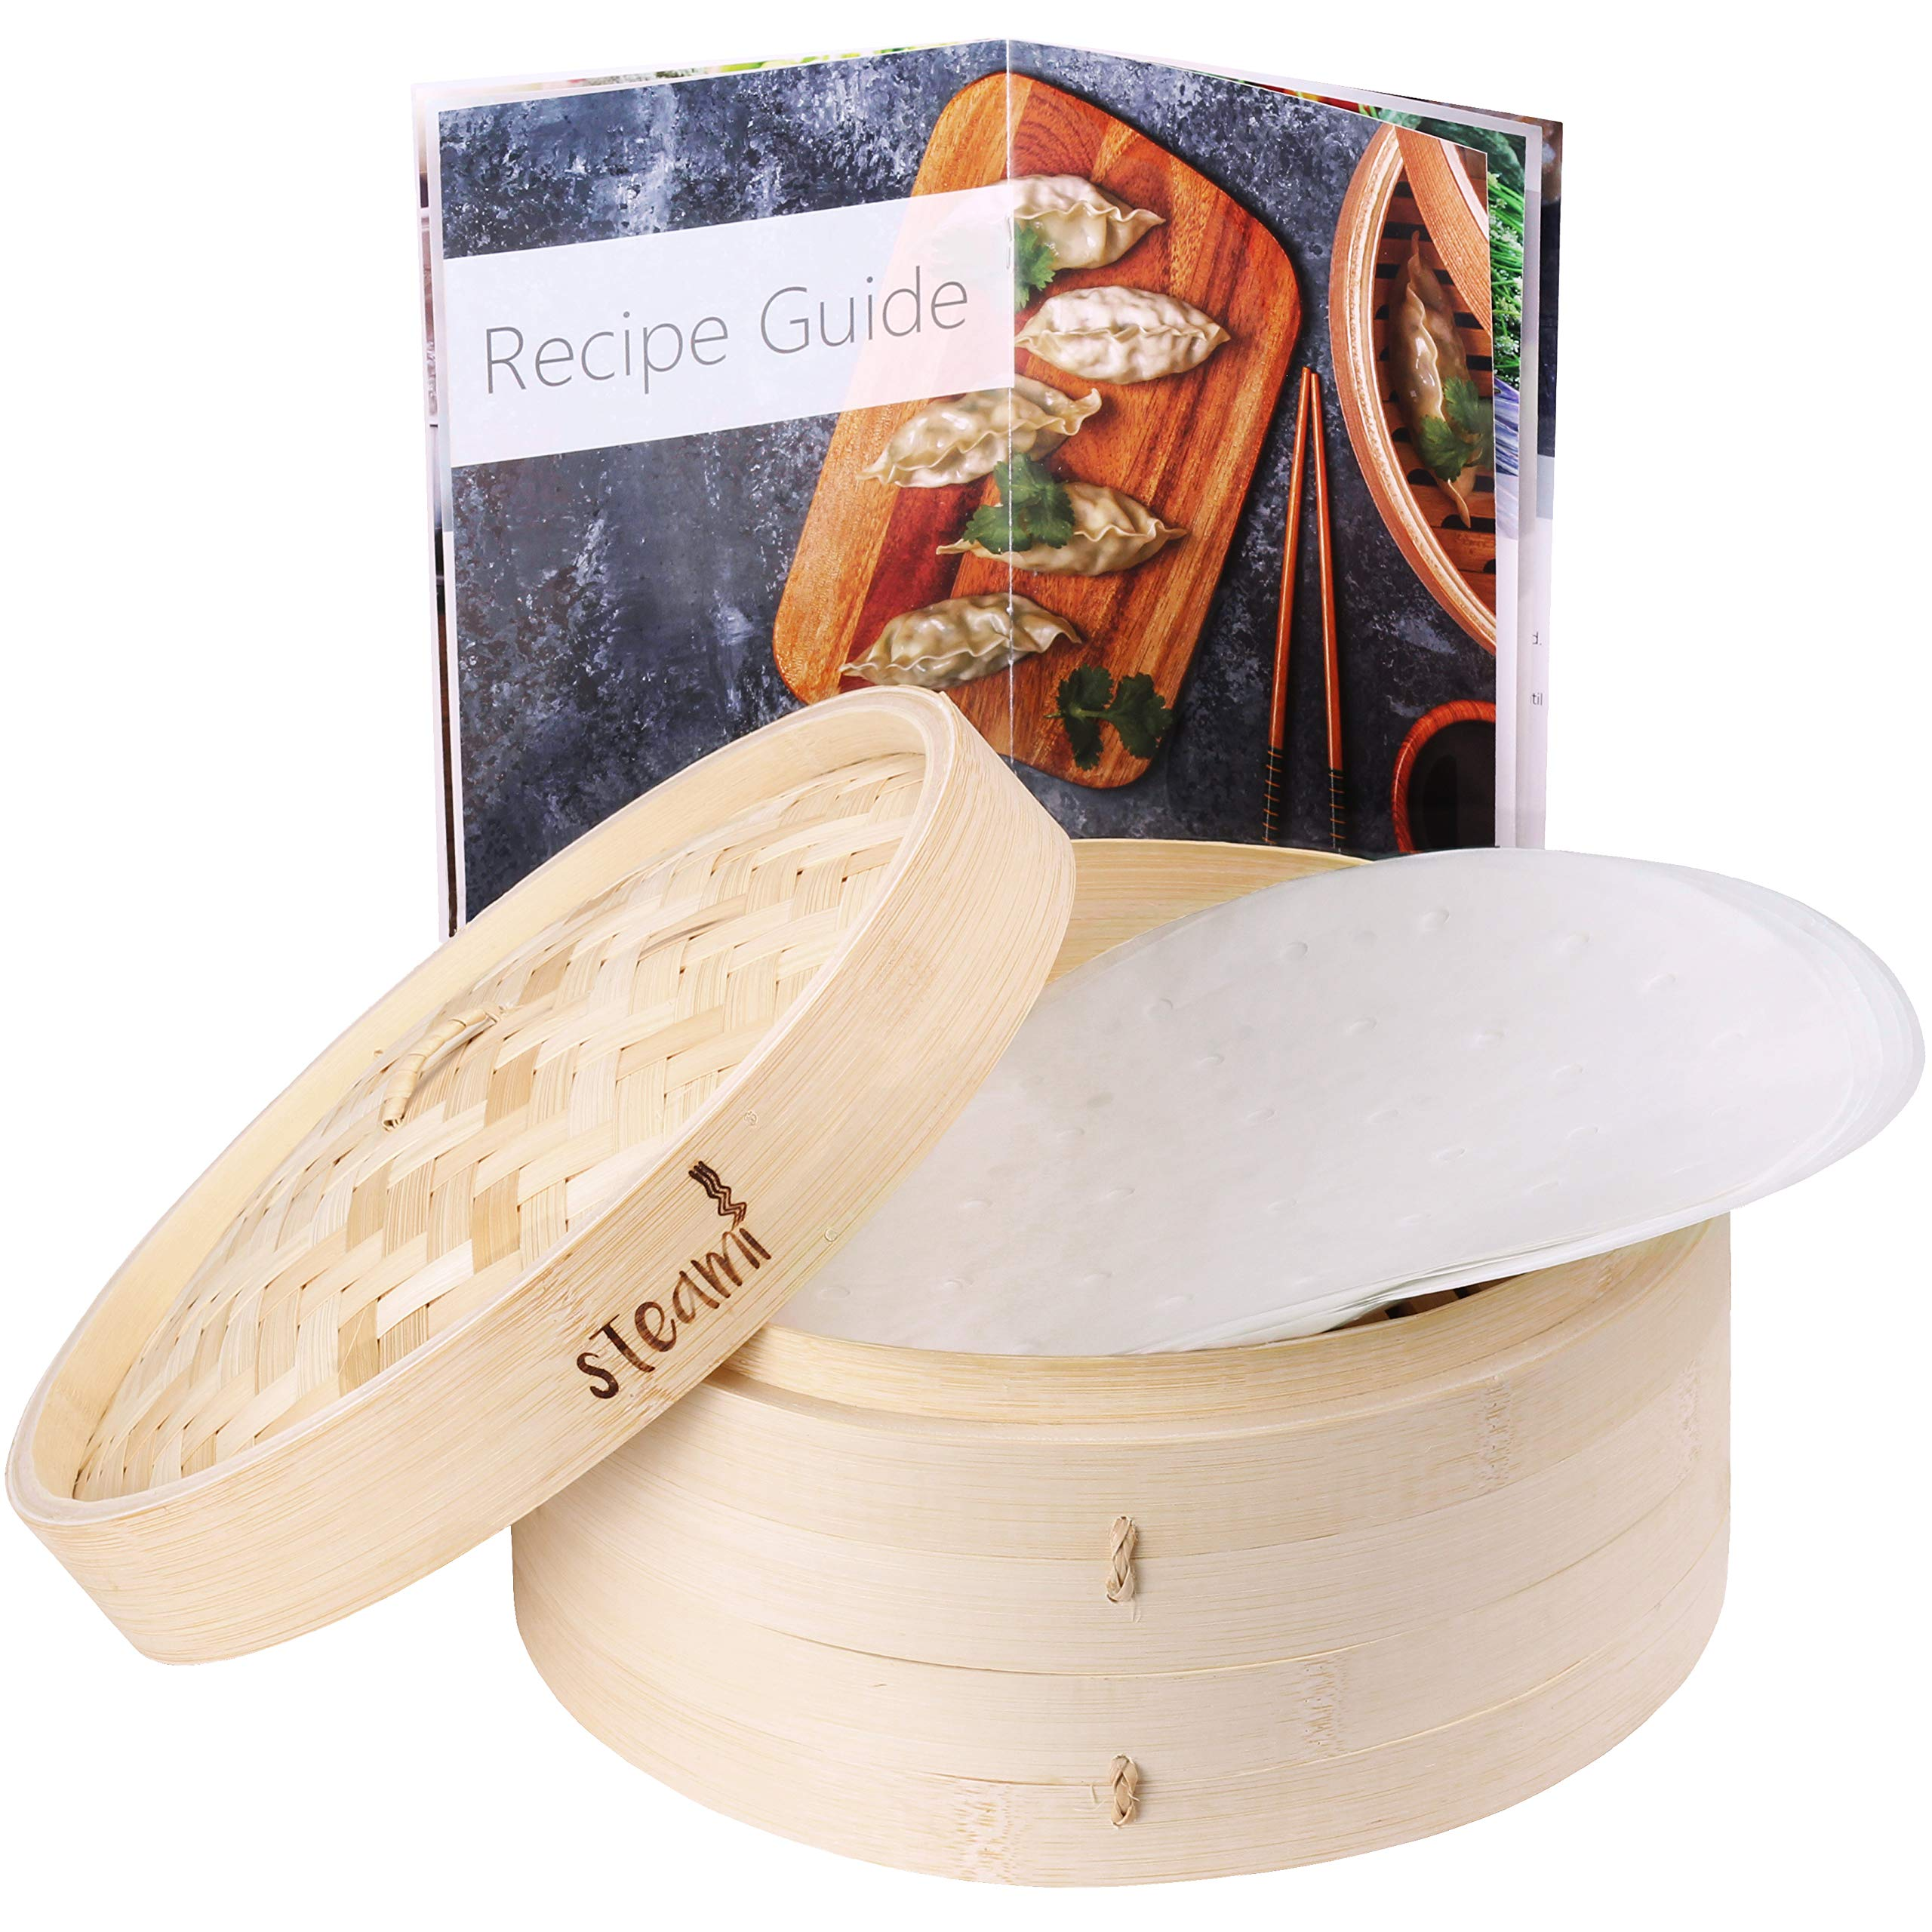 Steami - Bamboo Steamer (10 inch) with Liners and Recipe Guide by Steami